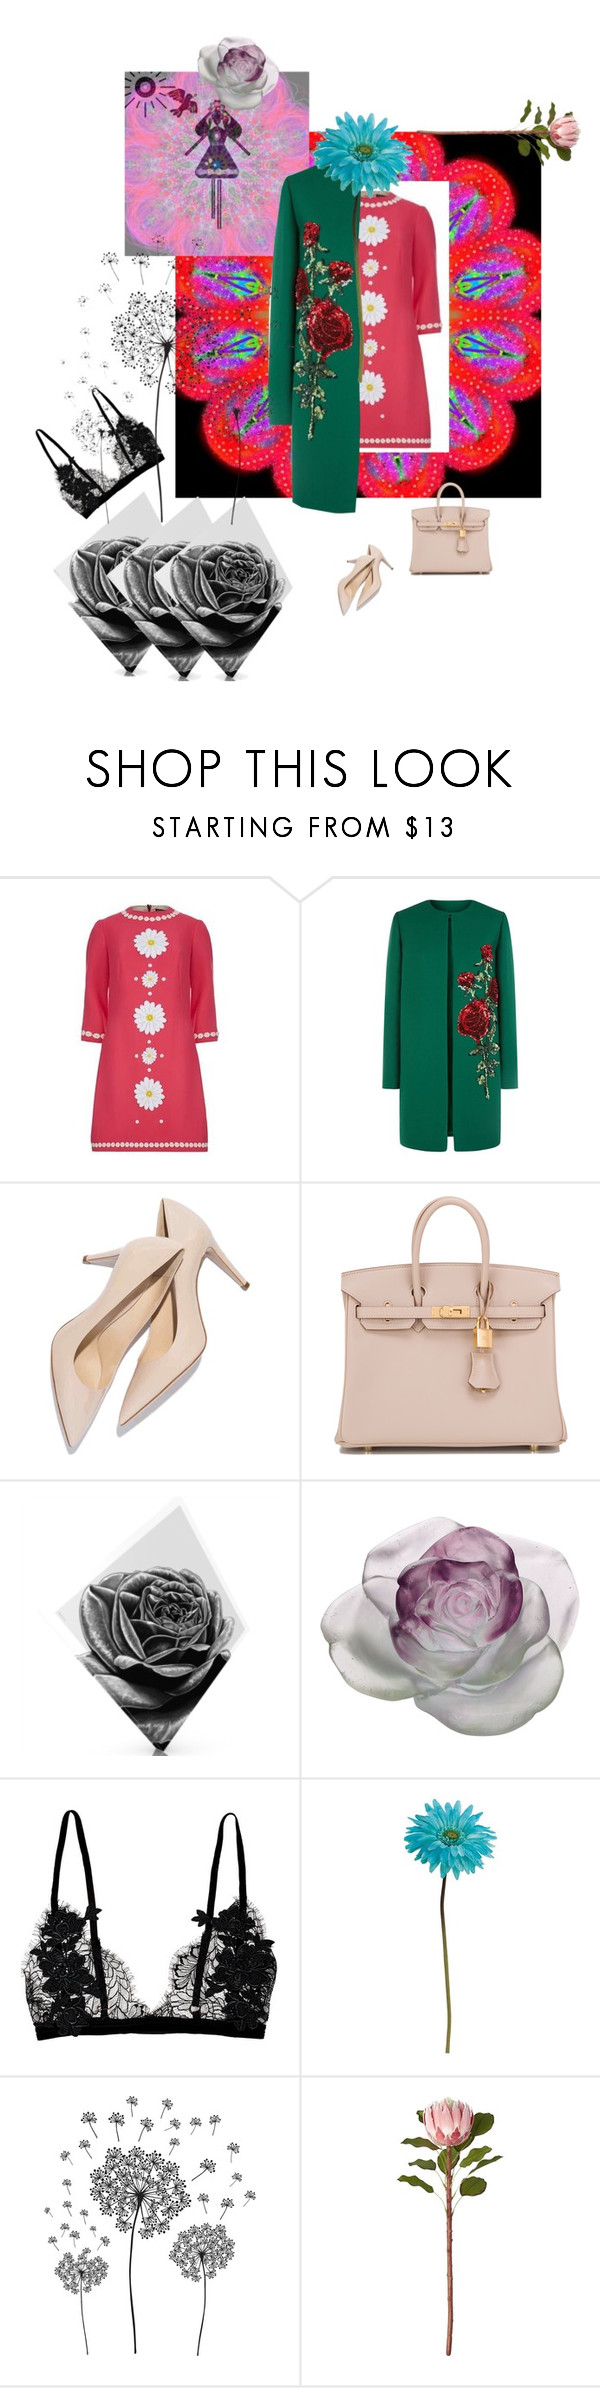 """""""Flowery insanity"""" by alla-chernets ❤ liked on Polyvore featuring Dolce&Gabbana, Hermès, Maxwell Dickson, Daum, Allstate Floral, jcp and CB2"""